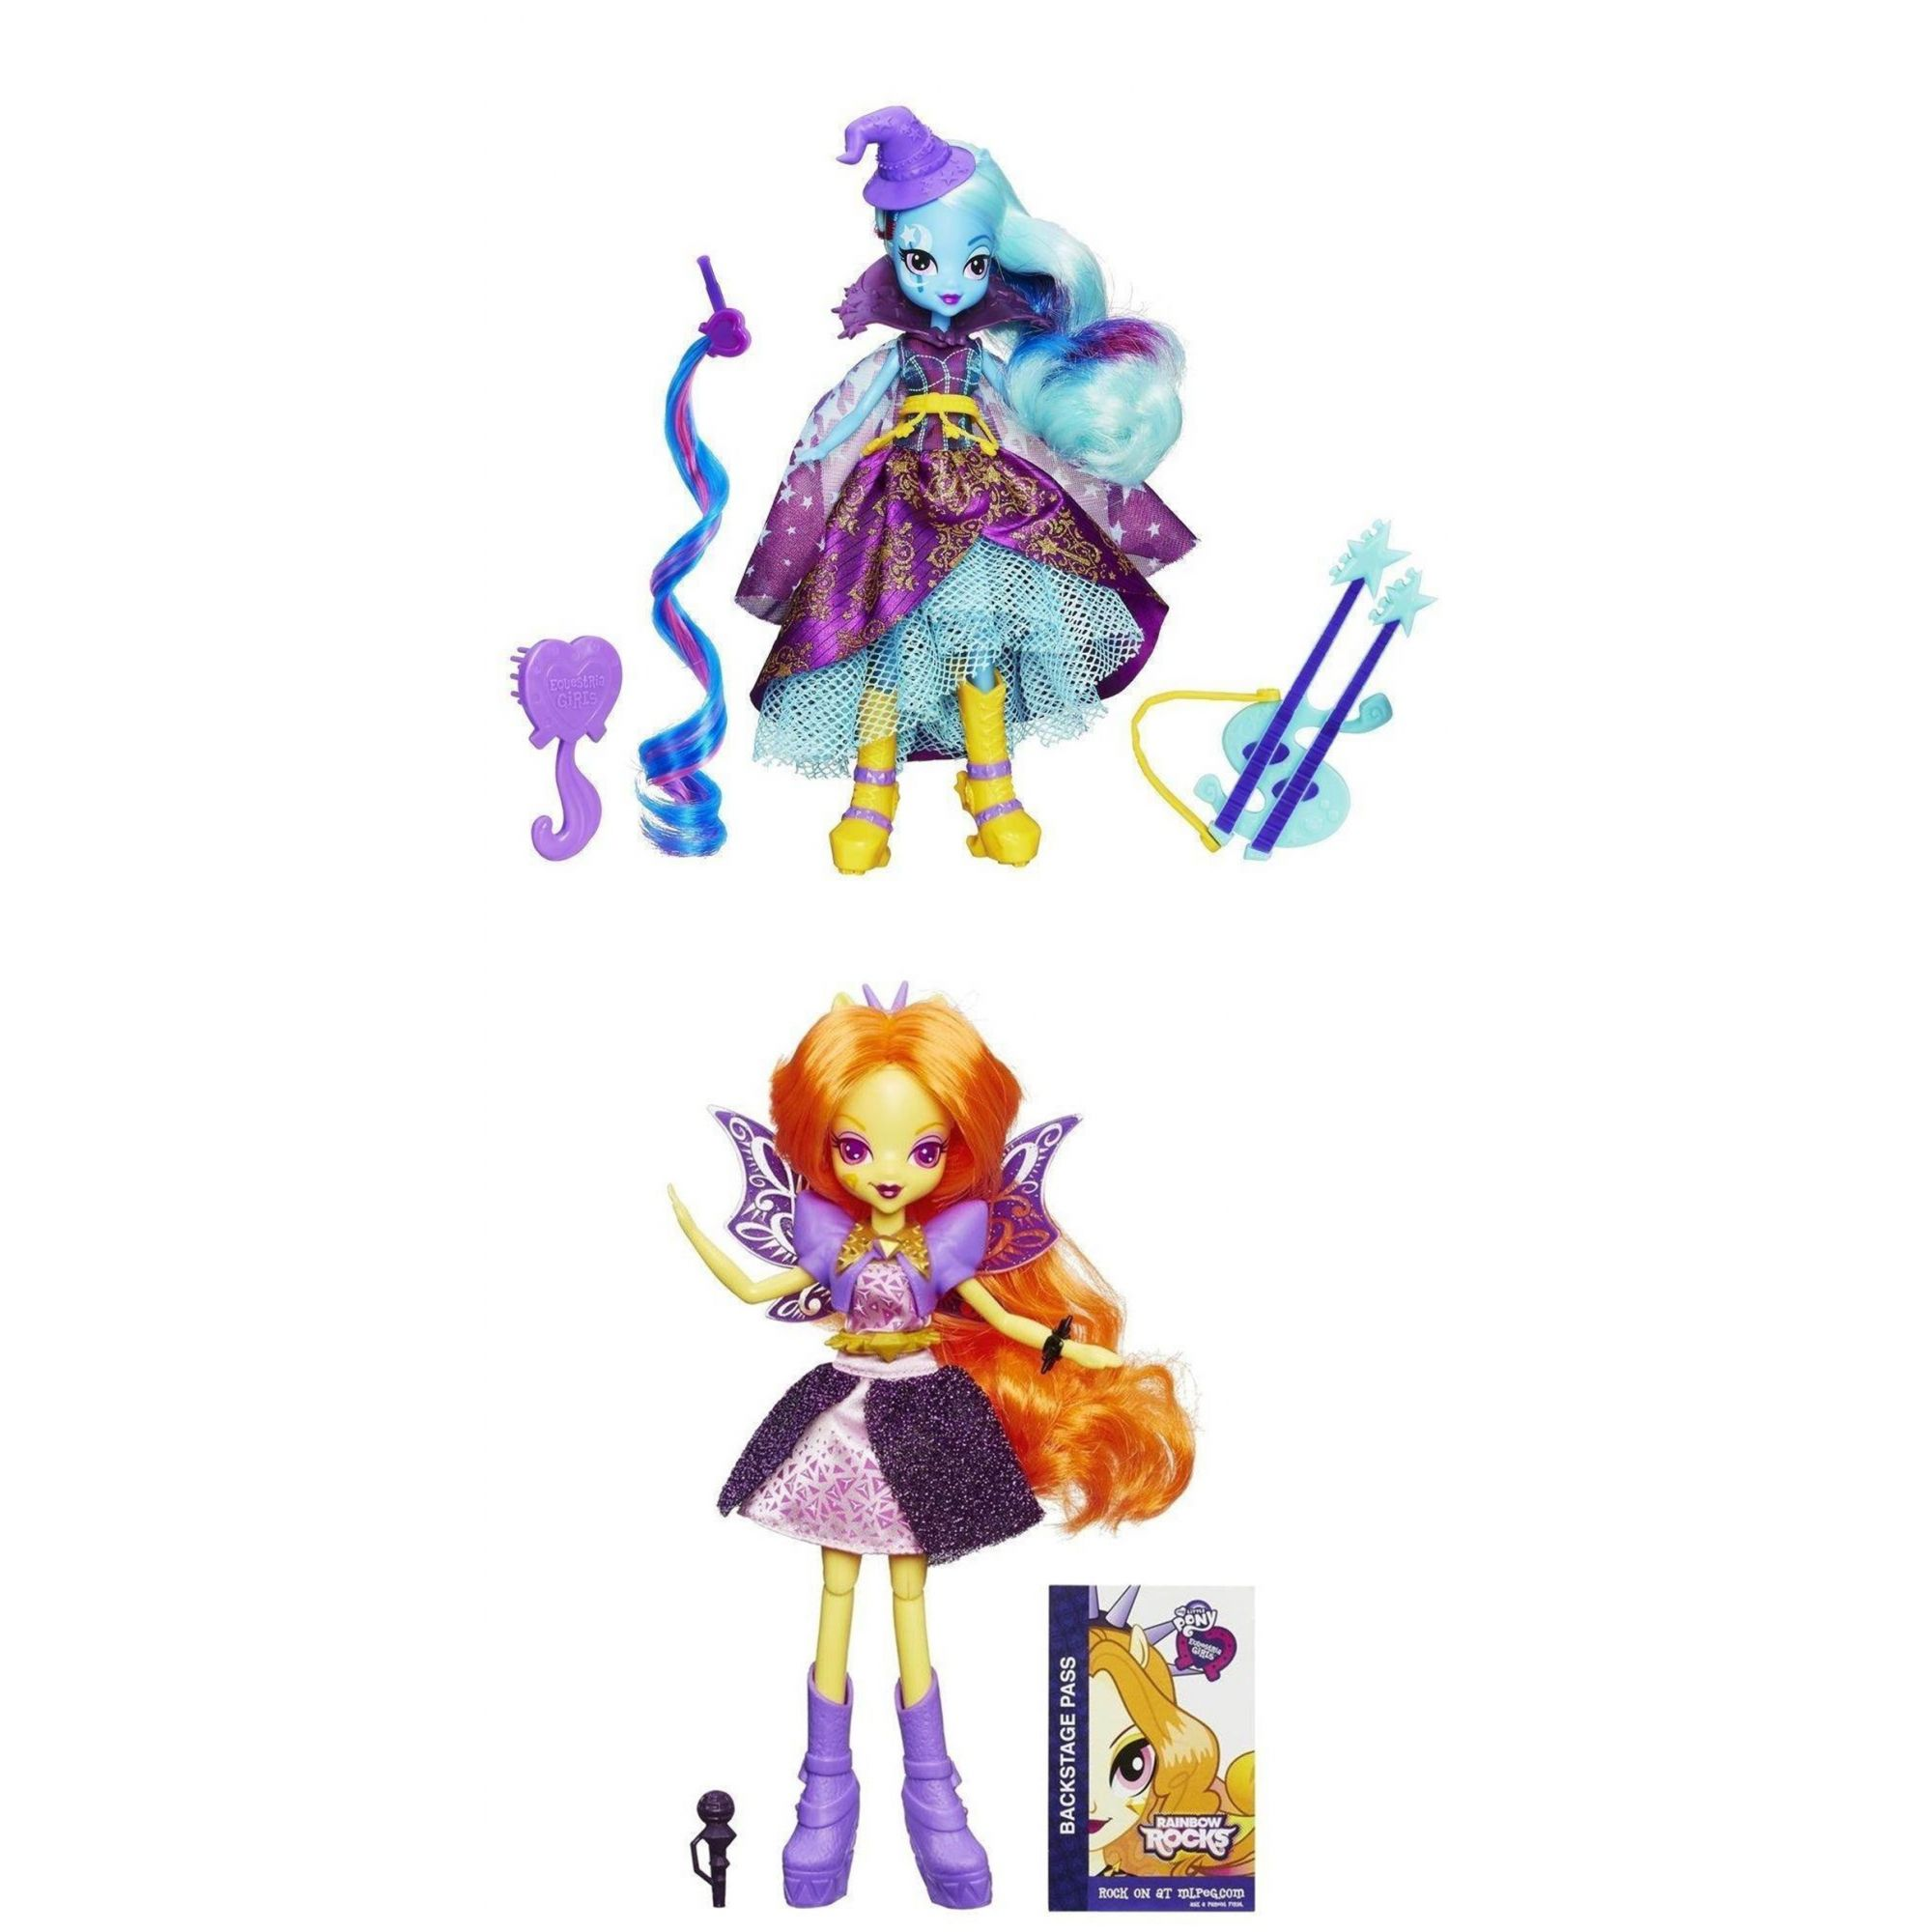 Kit 2 Bonecas My Little Pony Equestria Trixie e Adagio - Hasbro